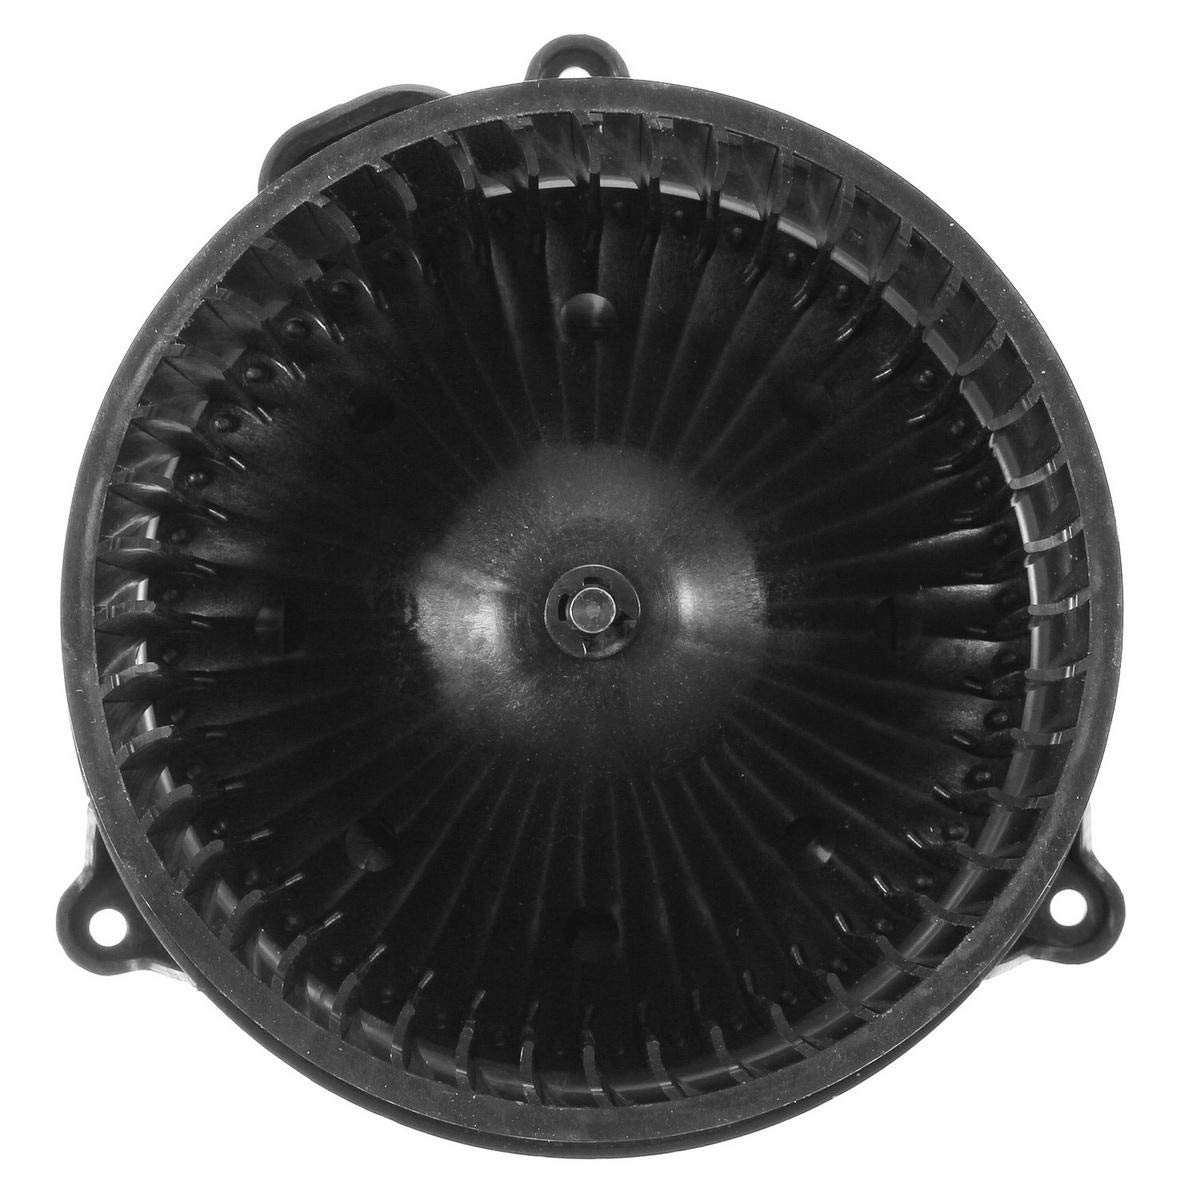 27226-ZH00A Compatible with Infiniti Qx56 2004-2010 Replacement for Nissan Armada 2005-2015,Nissan Titan 2004-2015 27226ZH00A AUTEX 1 Piece Blower Motor Assembly 700174